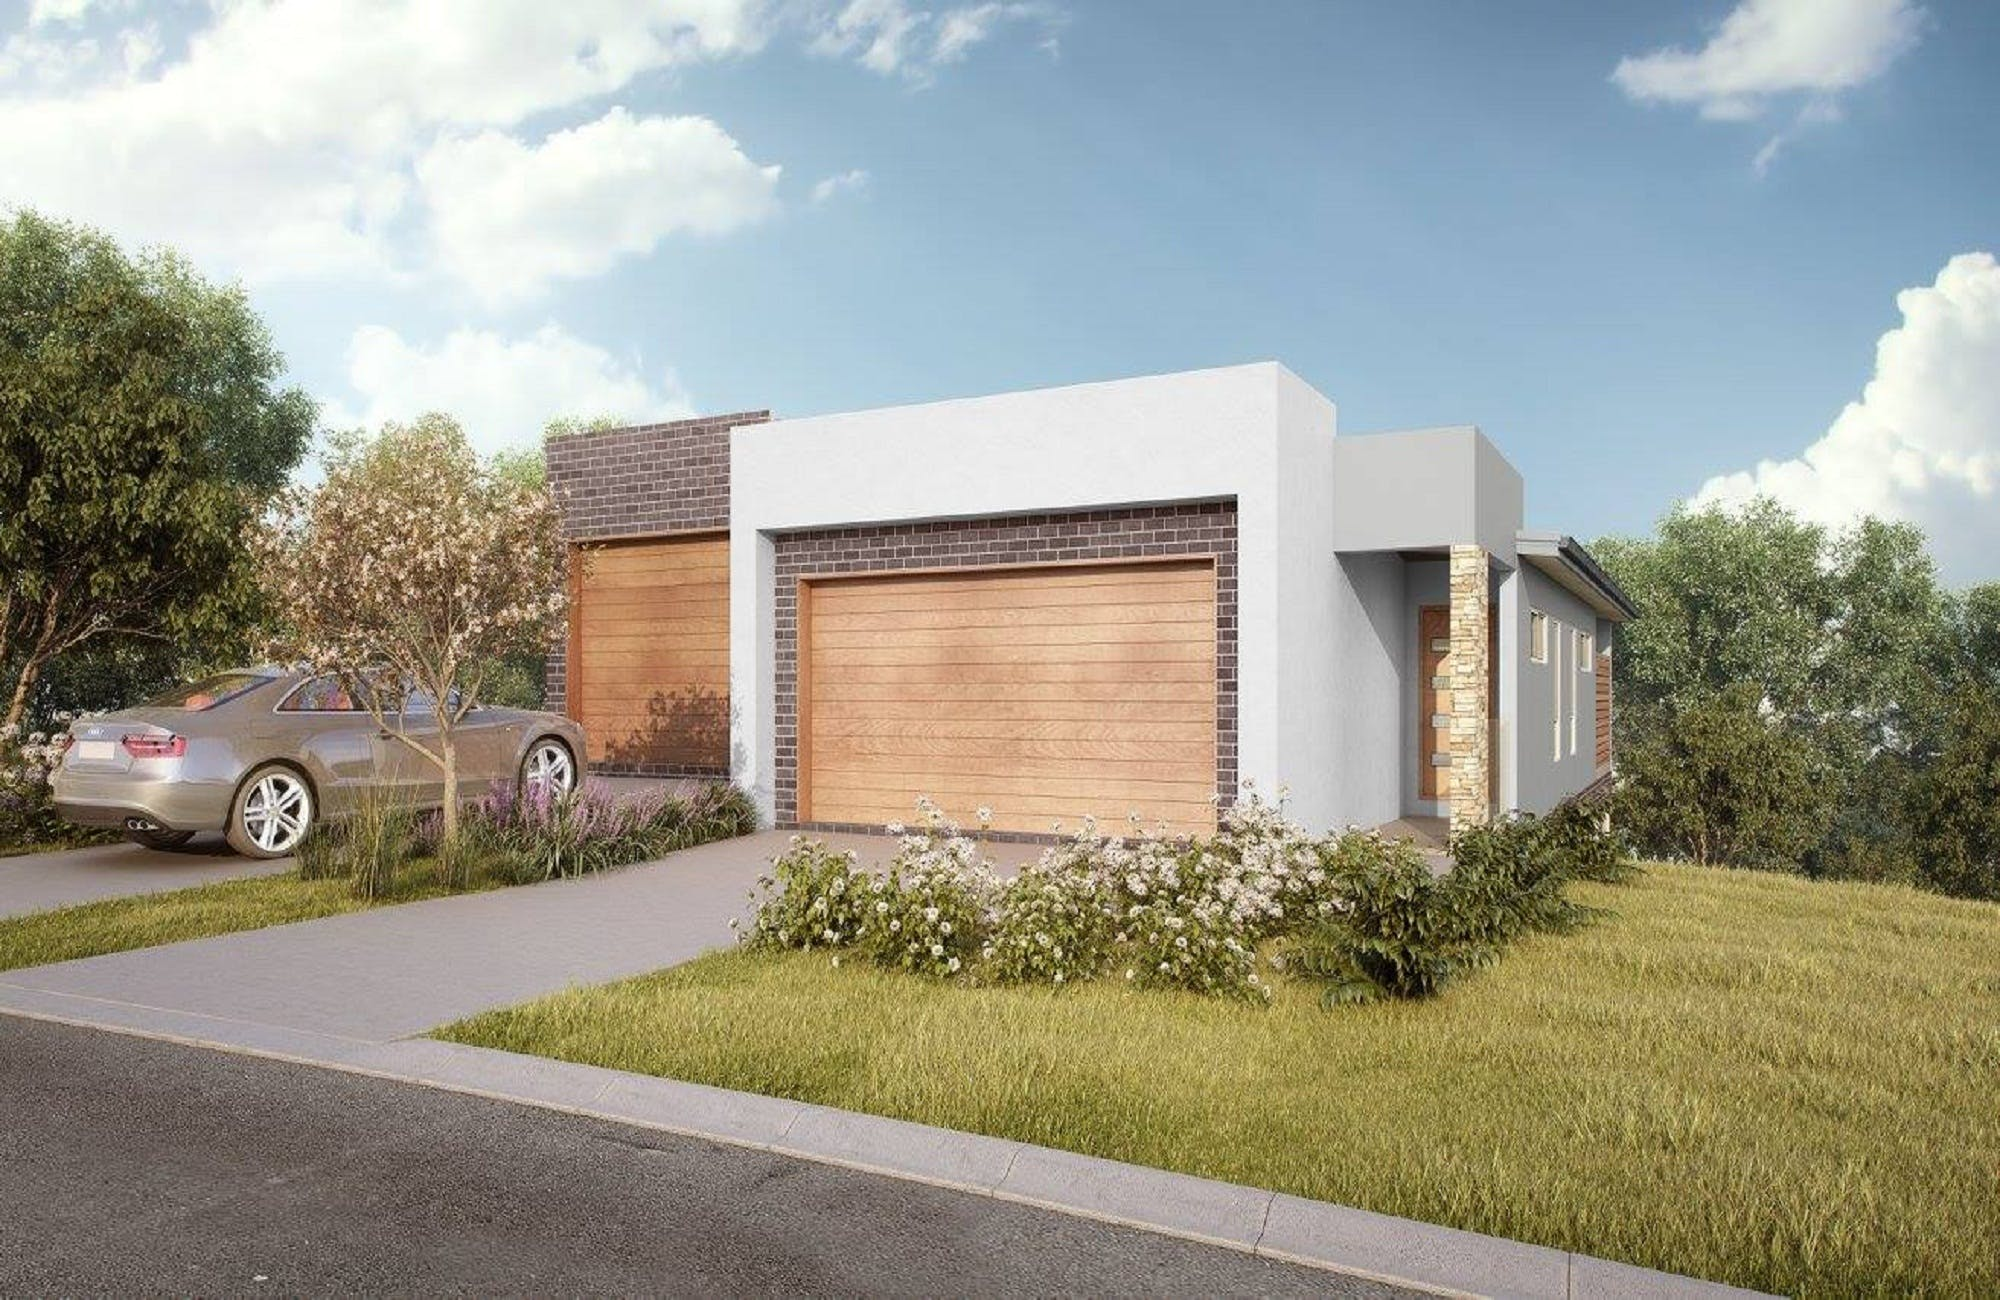 Free stock photo of home designs illawarra, house and land packages wollongong, project homes wollongong